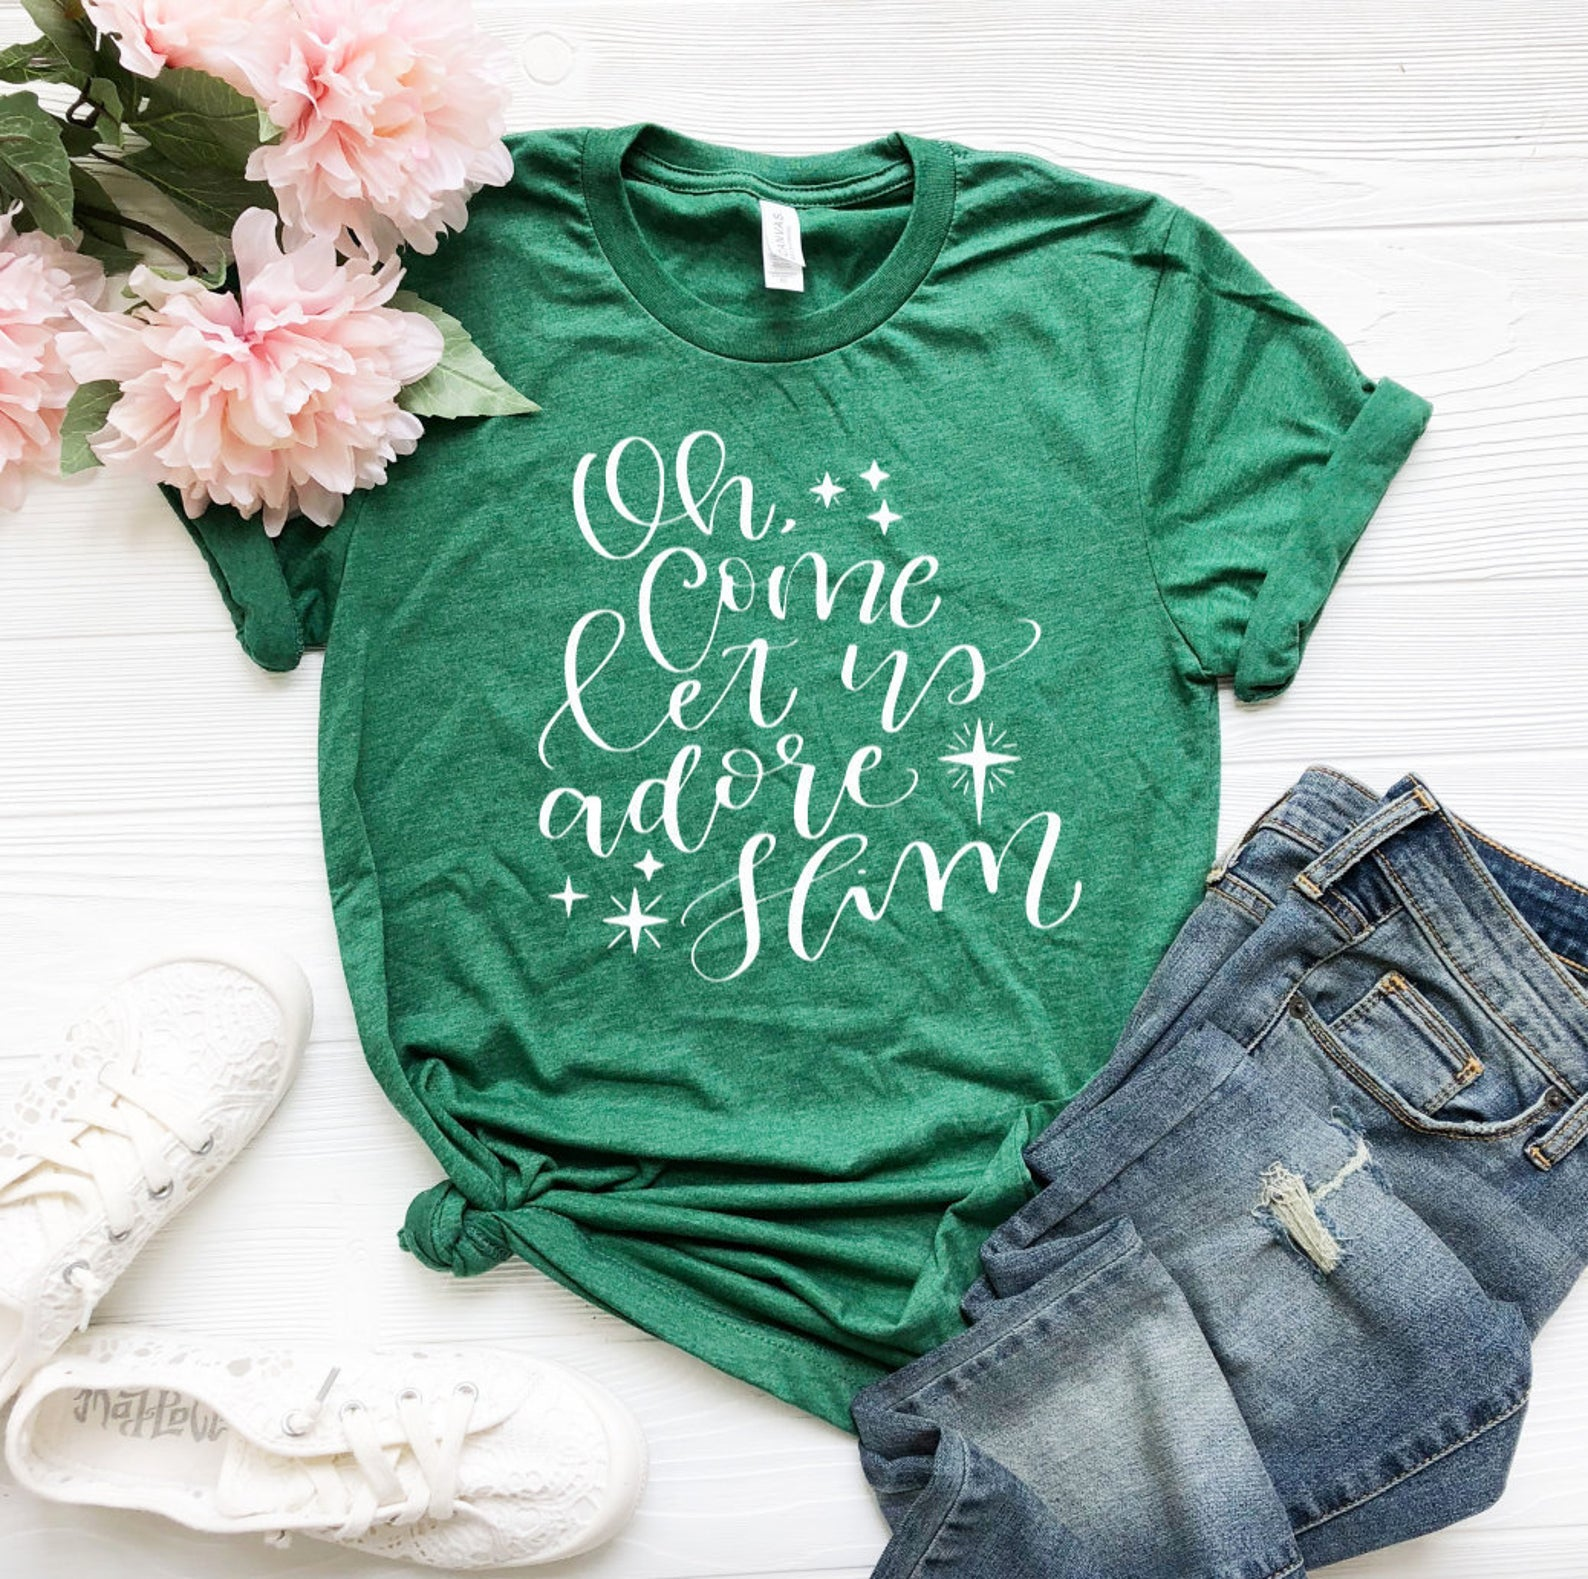 Let Us Adore Him Christmas T-shirt - Christmas T-Shirts - Cute Christmas T-Shirt - Custom Green Shirts - Green Shirts - Xmas Shirts